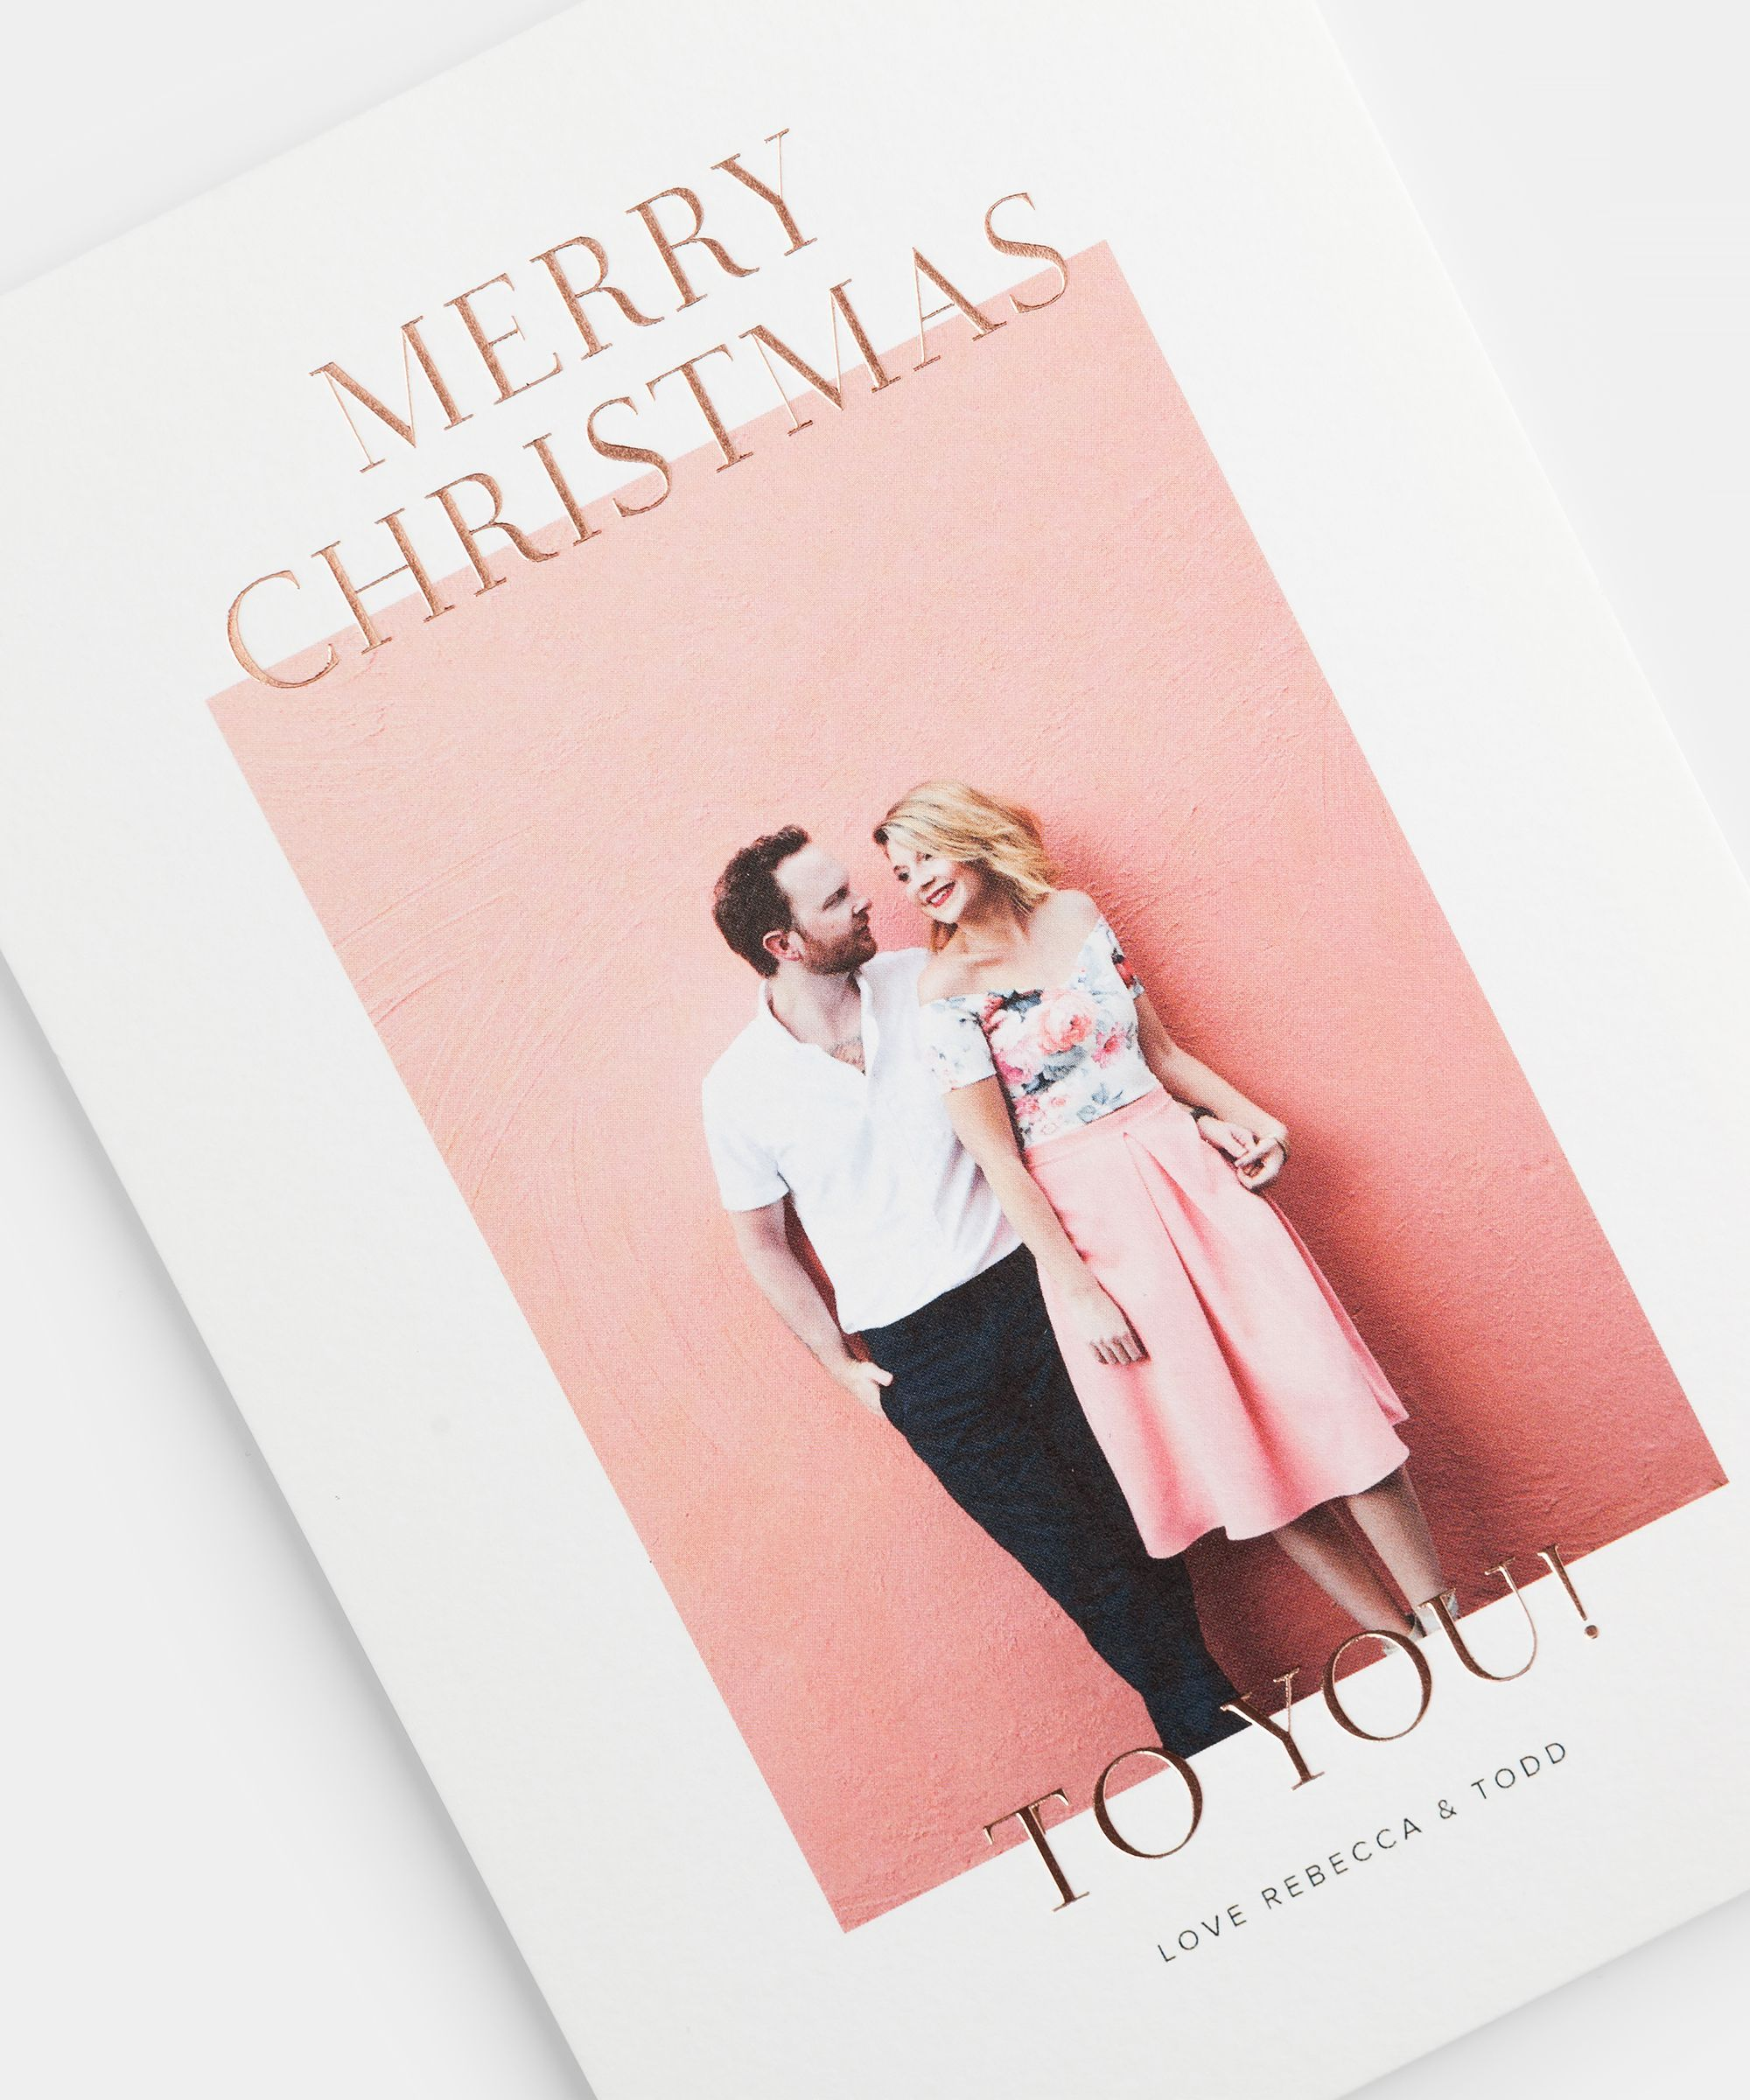 Best Holiday Card Websites - Christmas Greetings | The best holiday card sites that show your loved ones how much you care. #refinery29 http://www.refinery29.com/holiday-card-sites